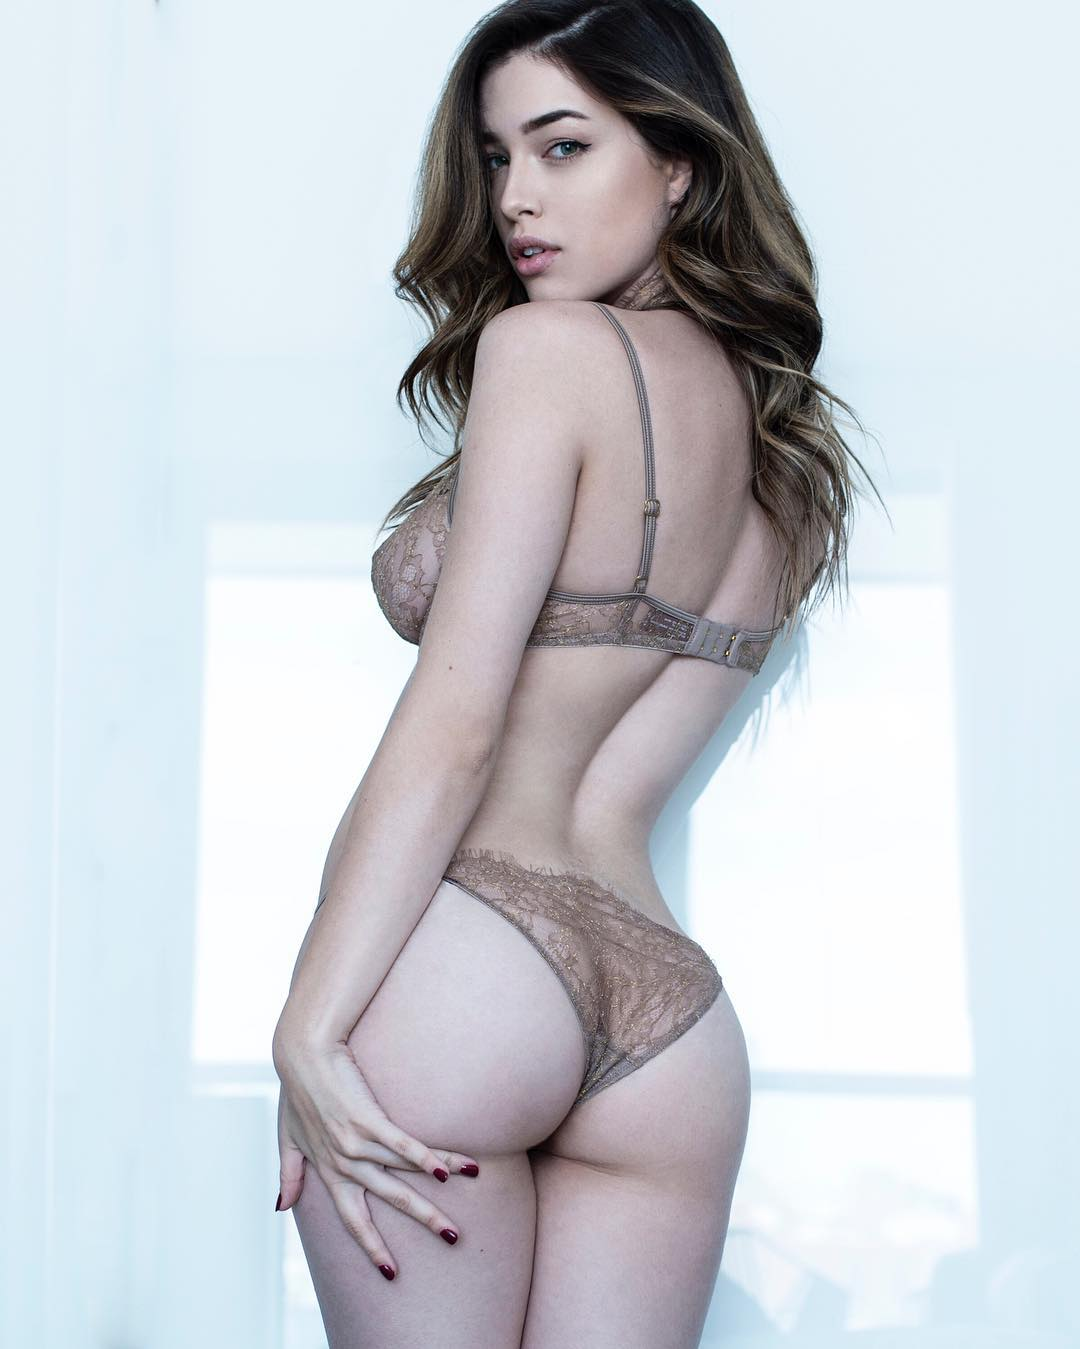 Kate beckinsale sex collection 3